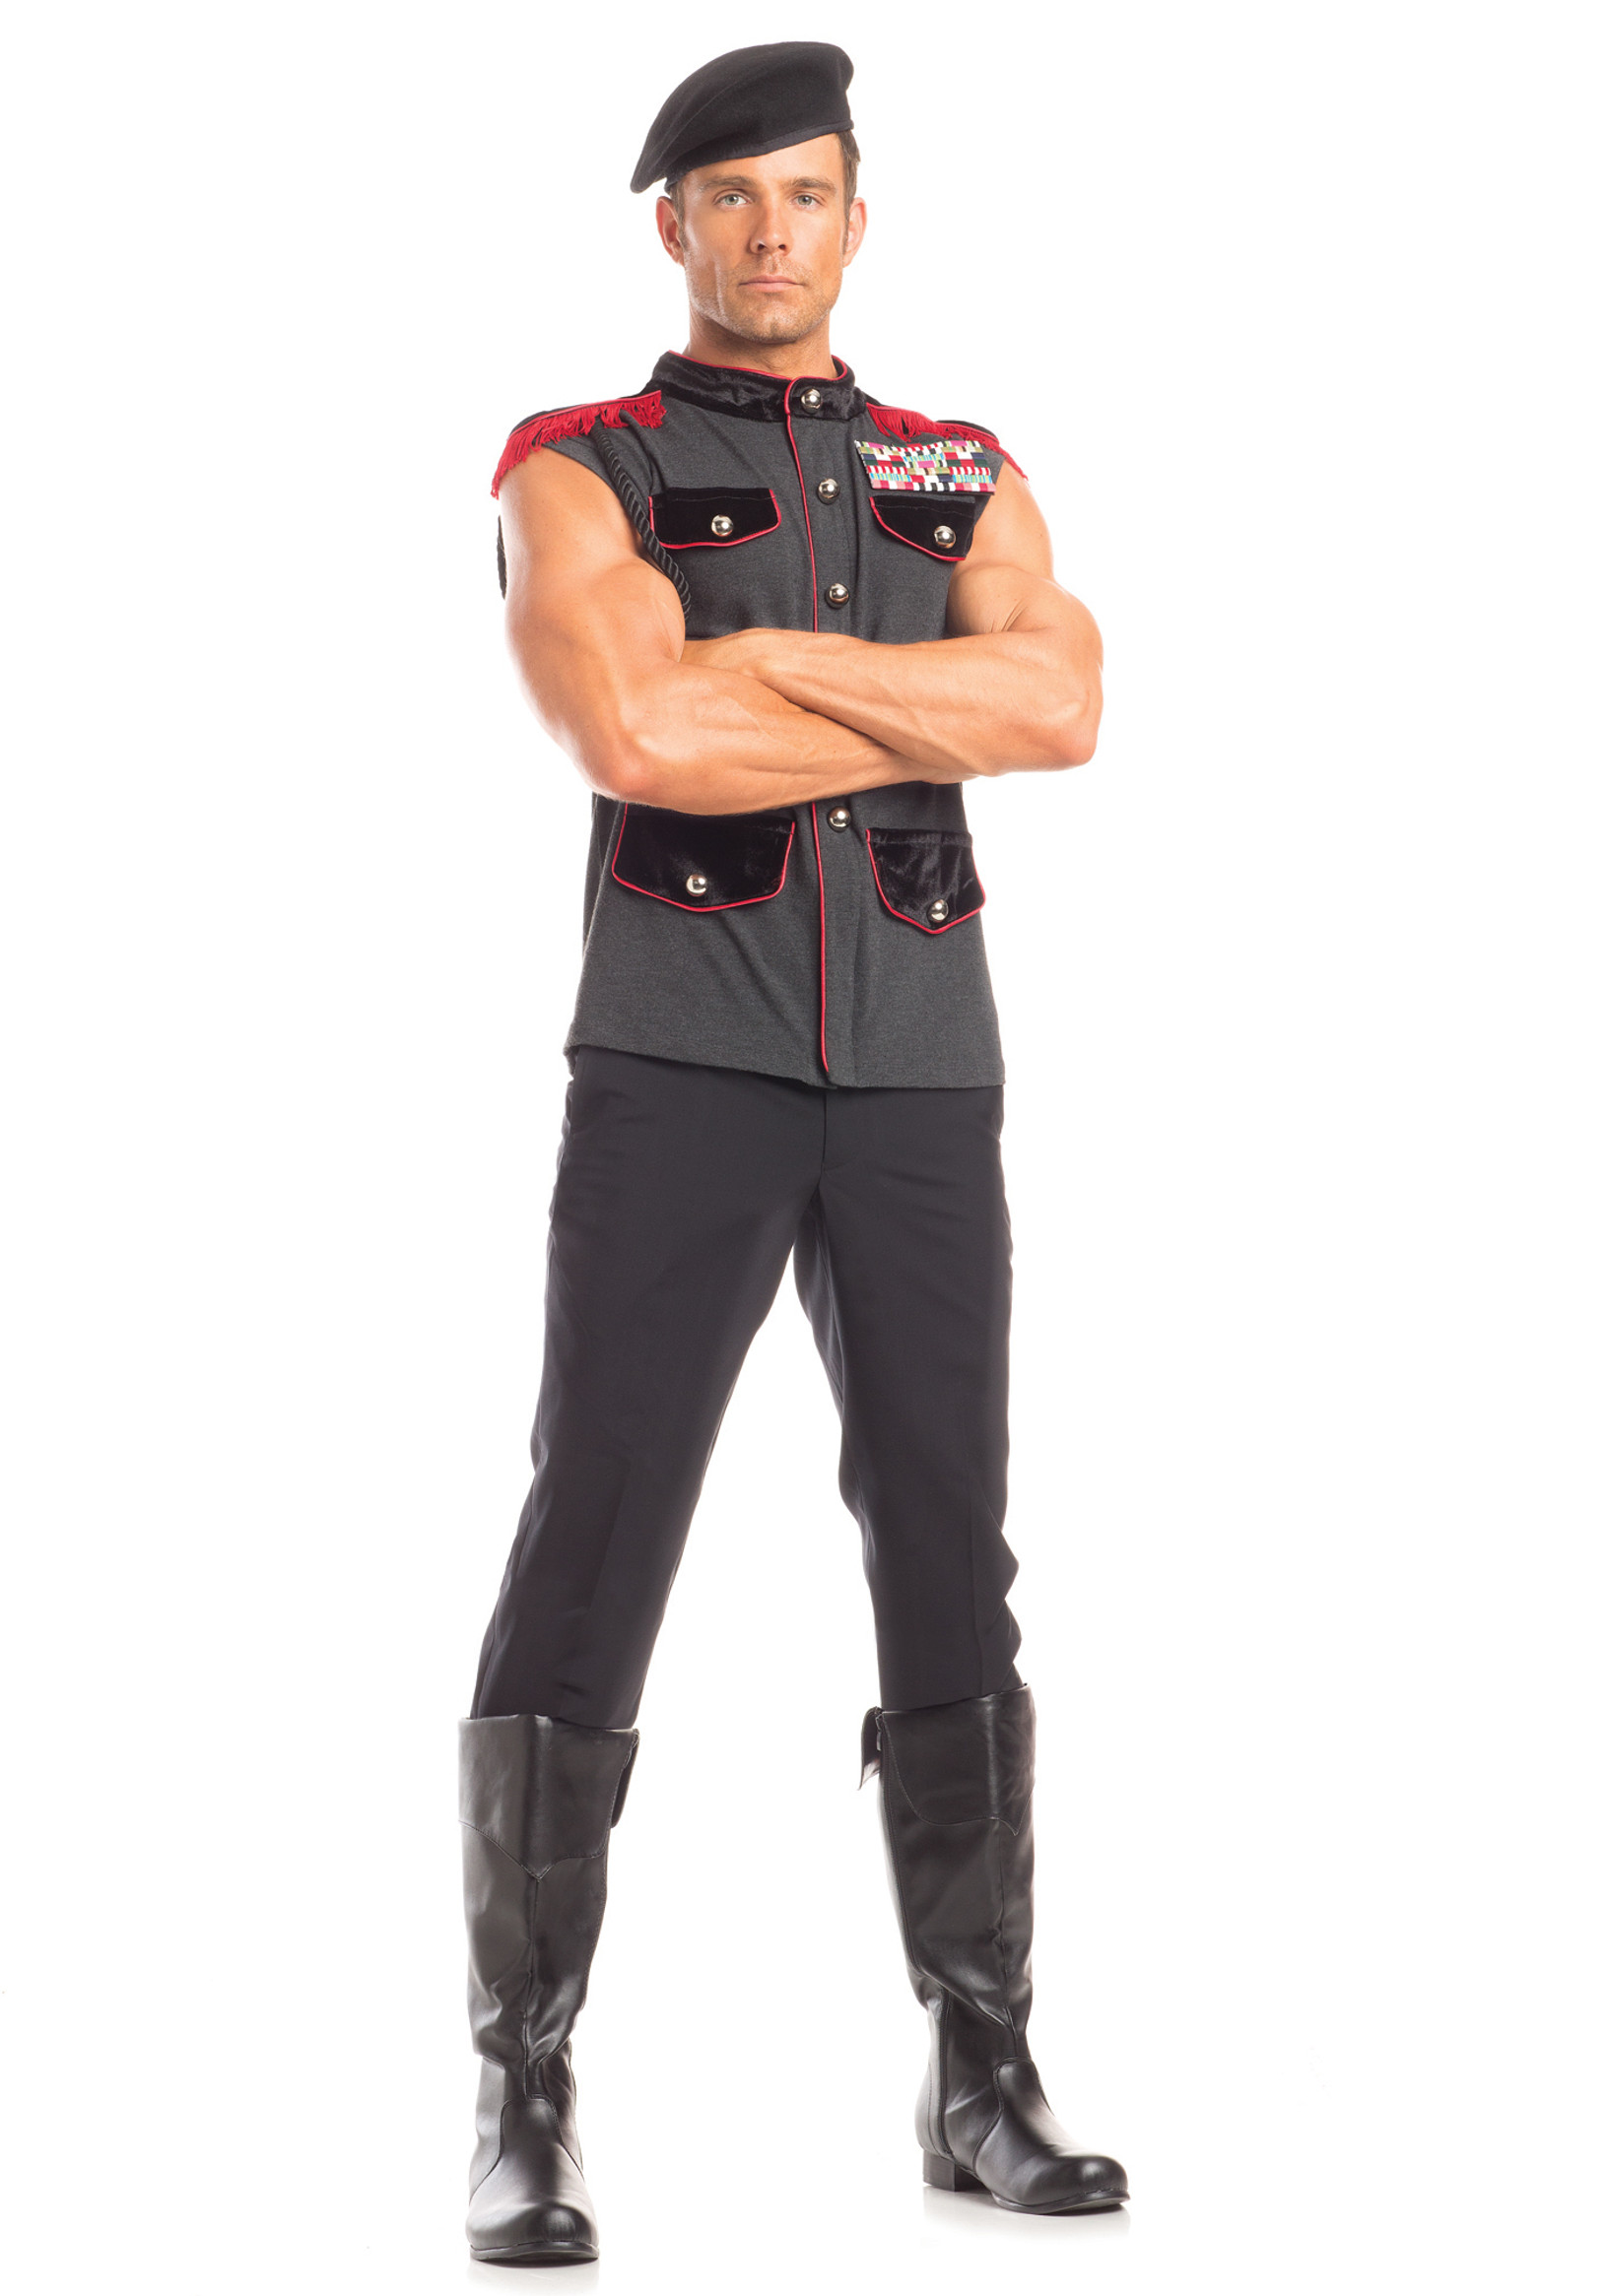 BW1615 2 Piece Outstanding Officer Costume